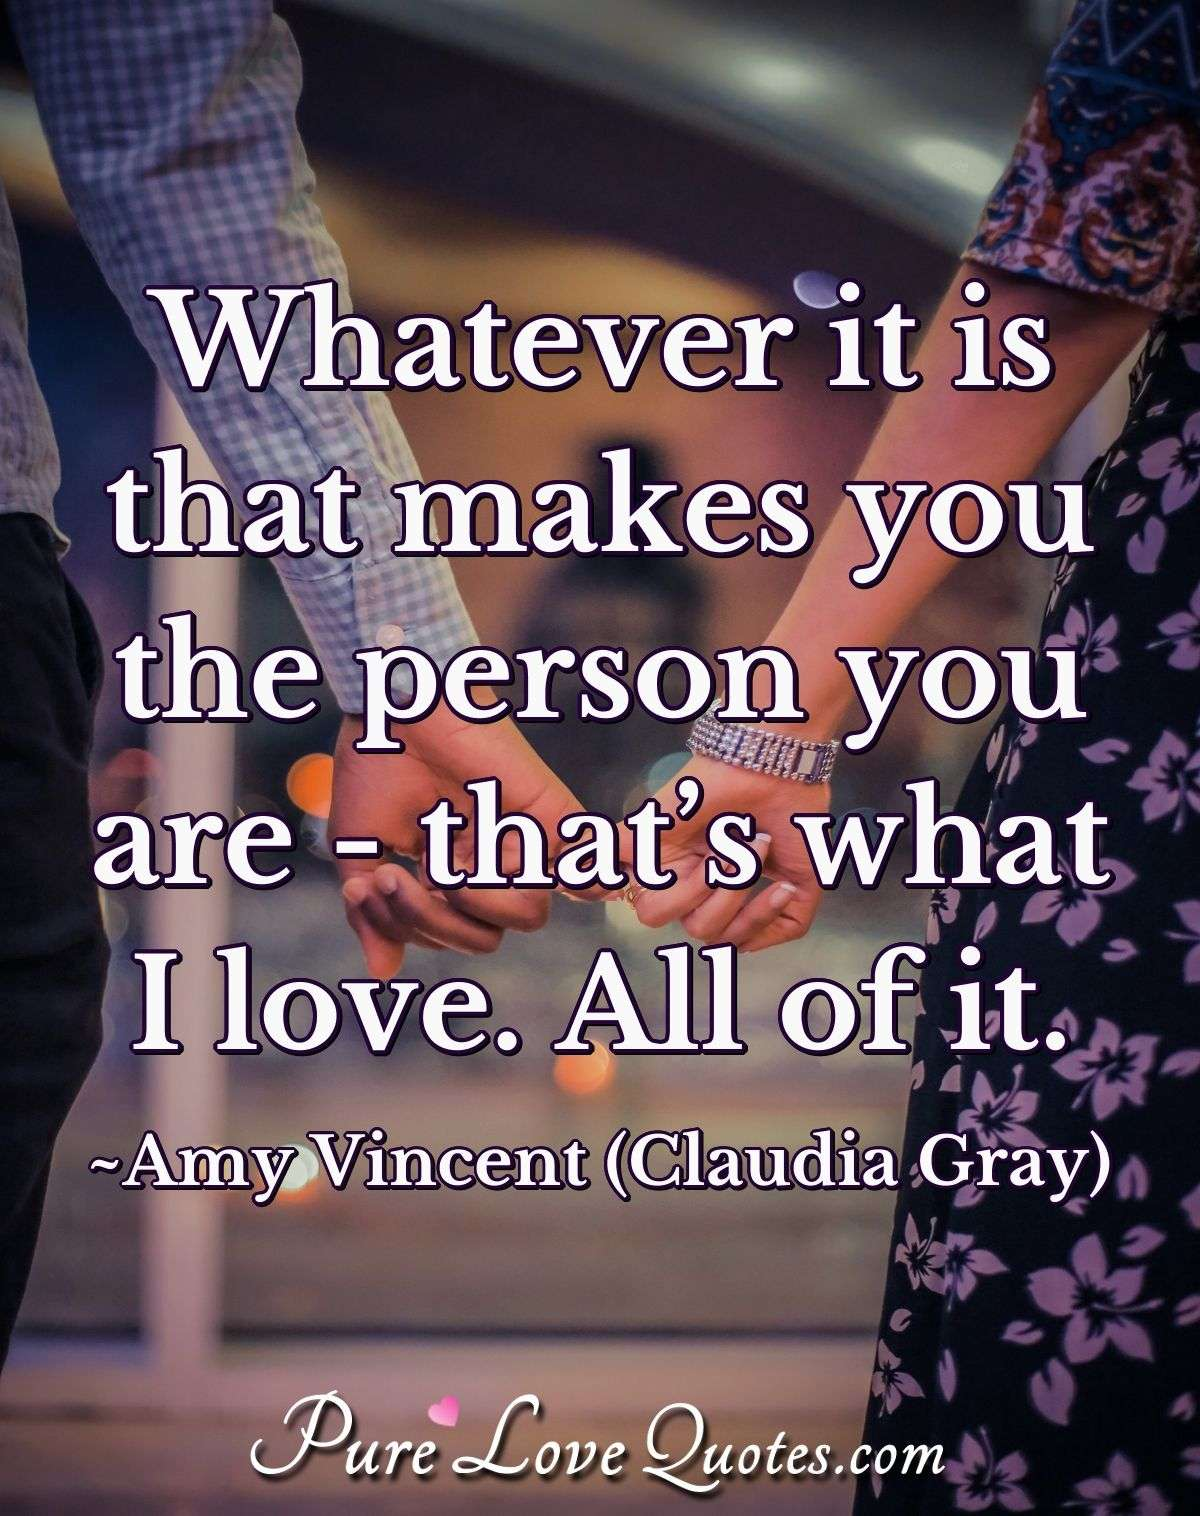 Whatever it is that makes you the person you are - that's what I love. All of it. - Amy Vincent (Claudia Gray)